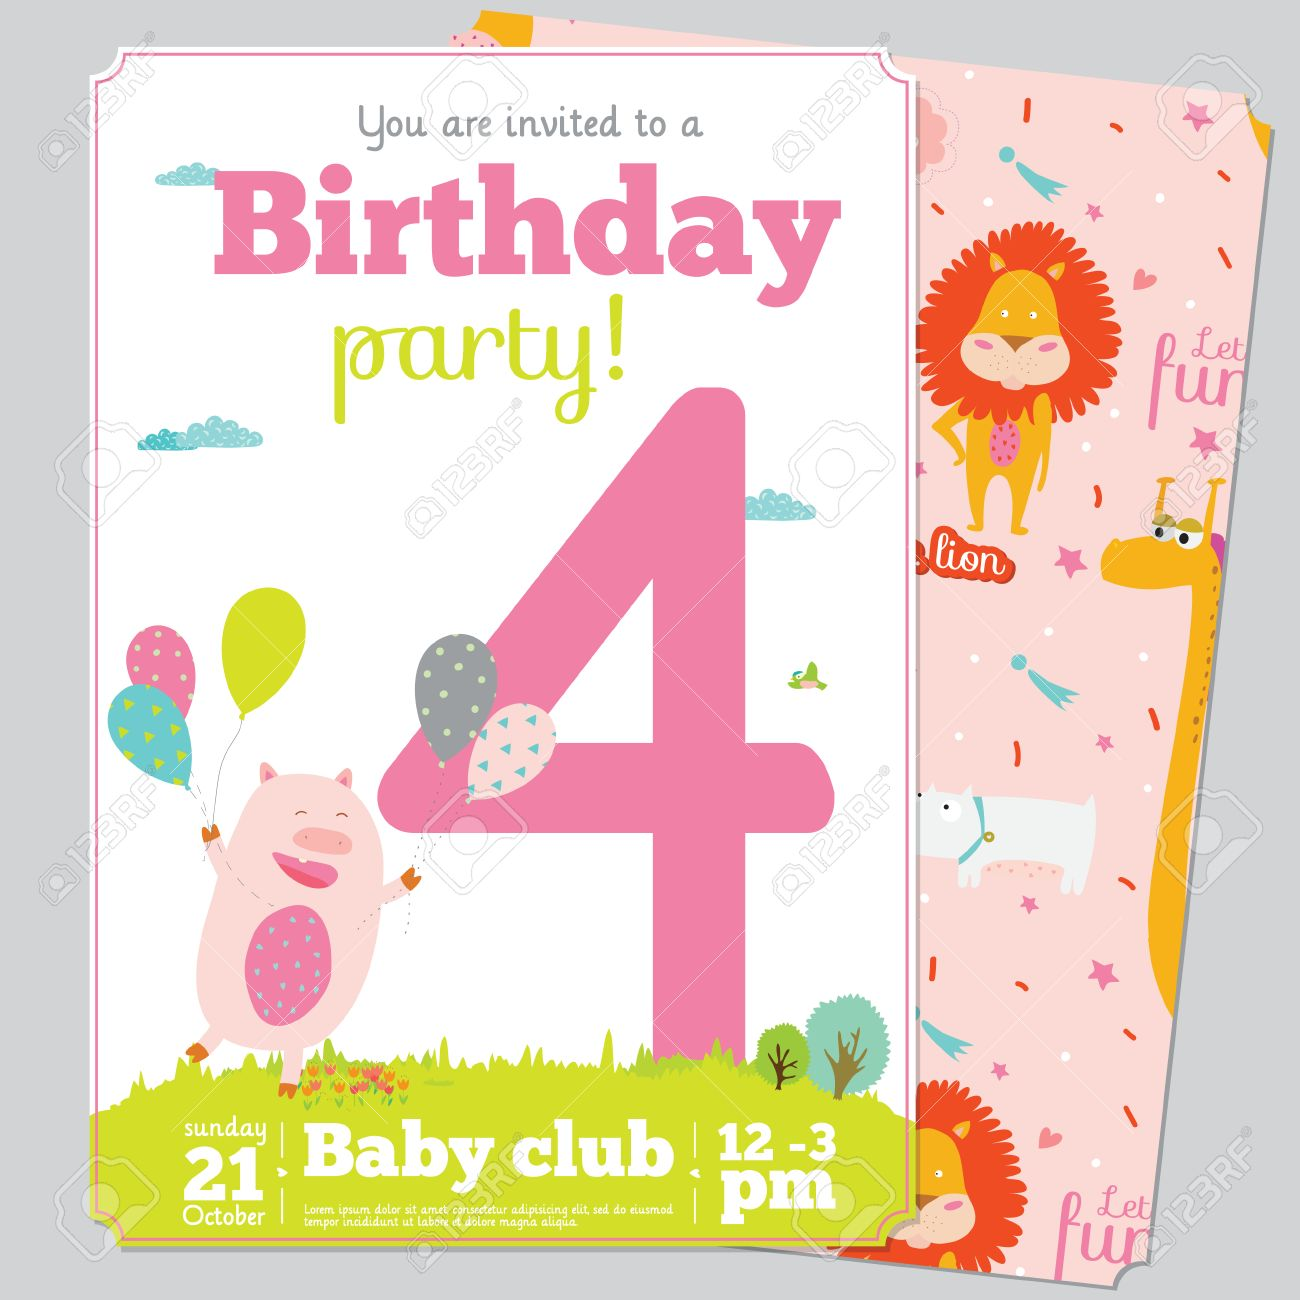 birthday party invitation card template ; 40618435-birthday-anniversary-numbers-with-cute-animals-and-kids-and-birthday-party-invitation-card-template-